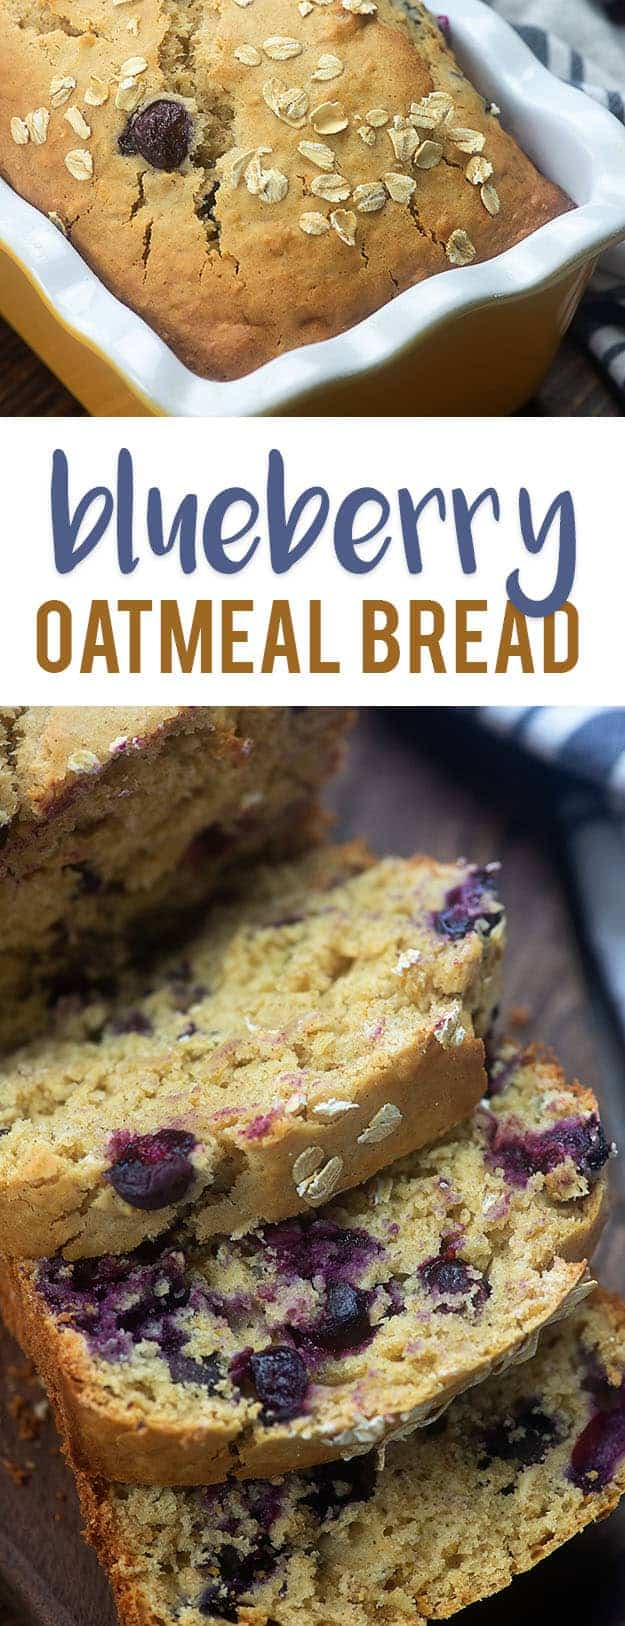 oatmeal bread with blueberries